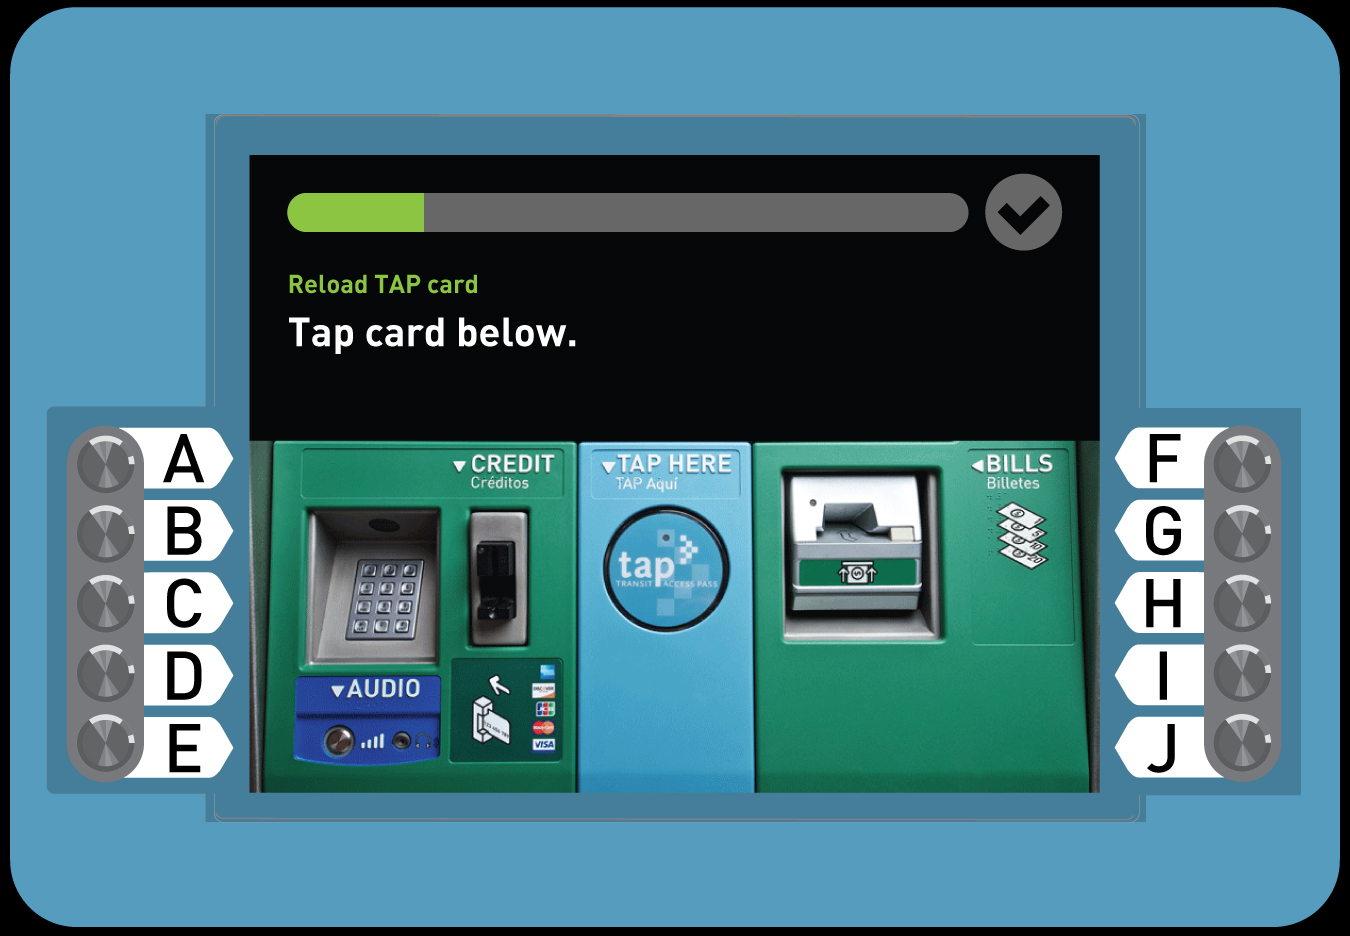 3. Buy a Senior TAP card with Stored Value